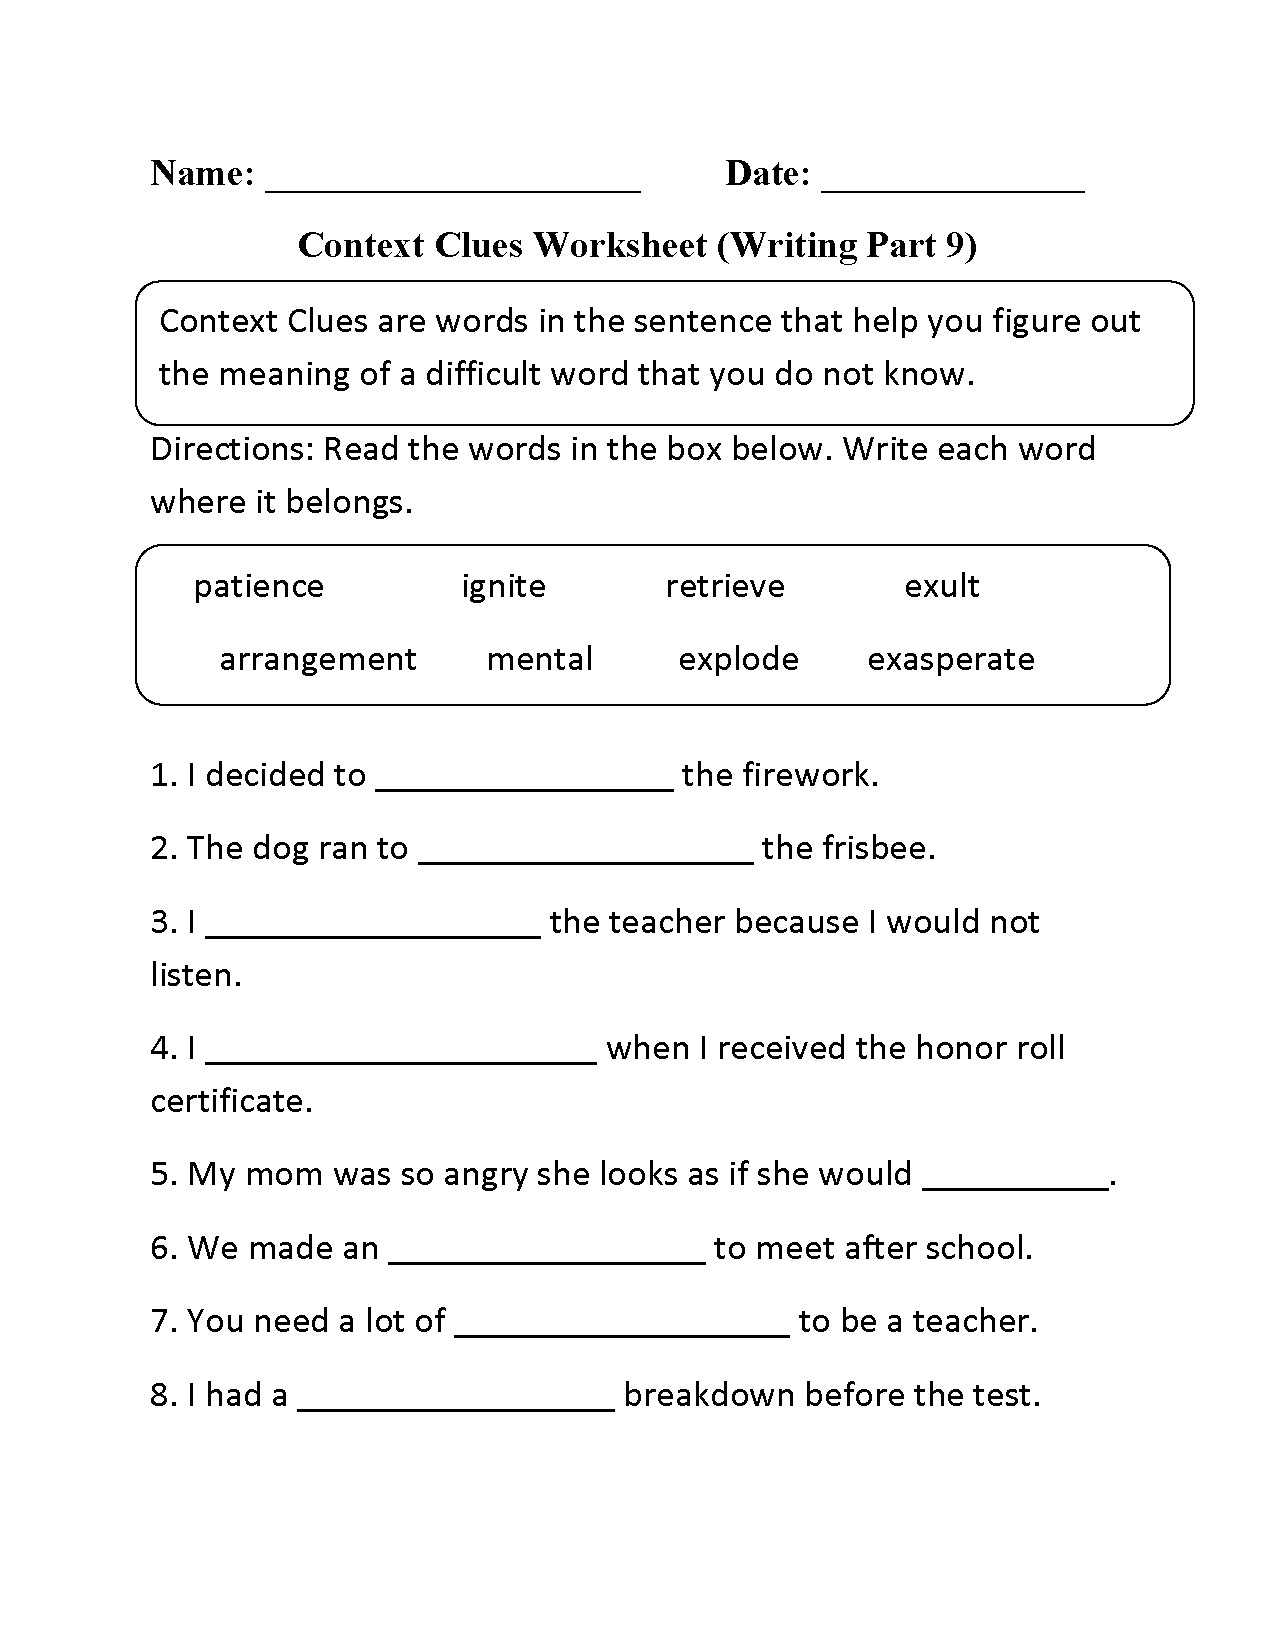 Context Clues Worksheets 6th Grade 5th Grade Context Clues Worksheets